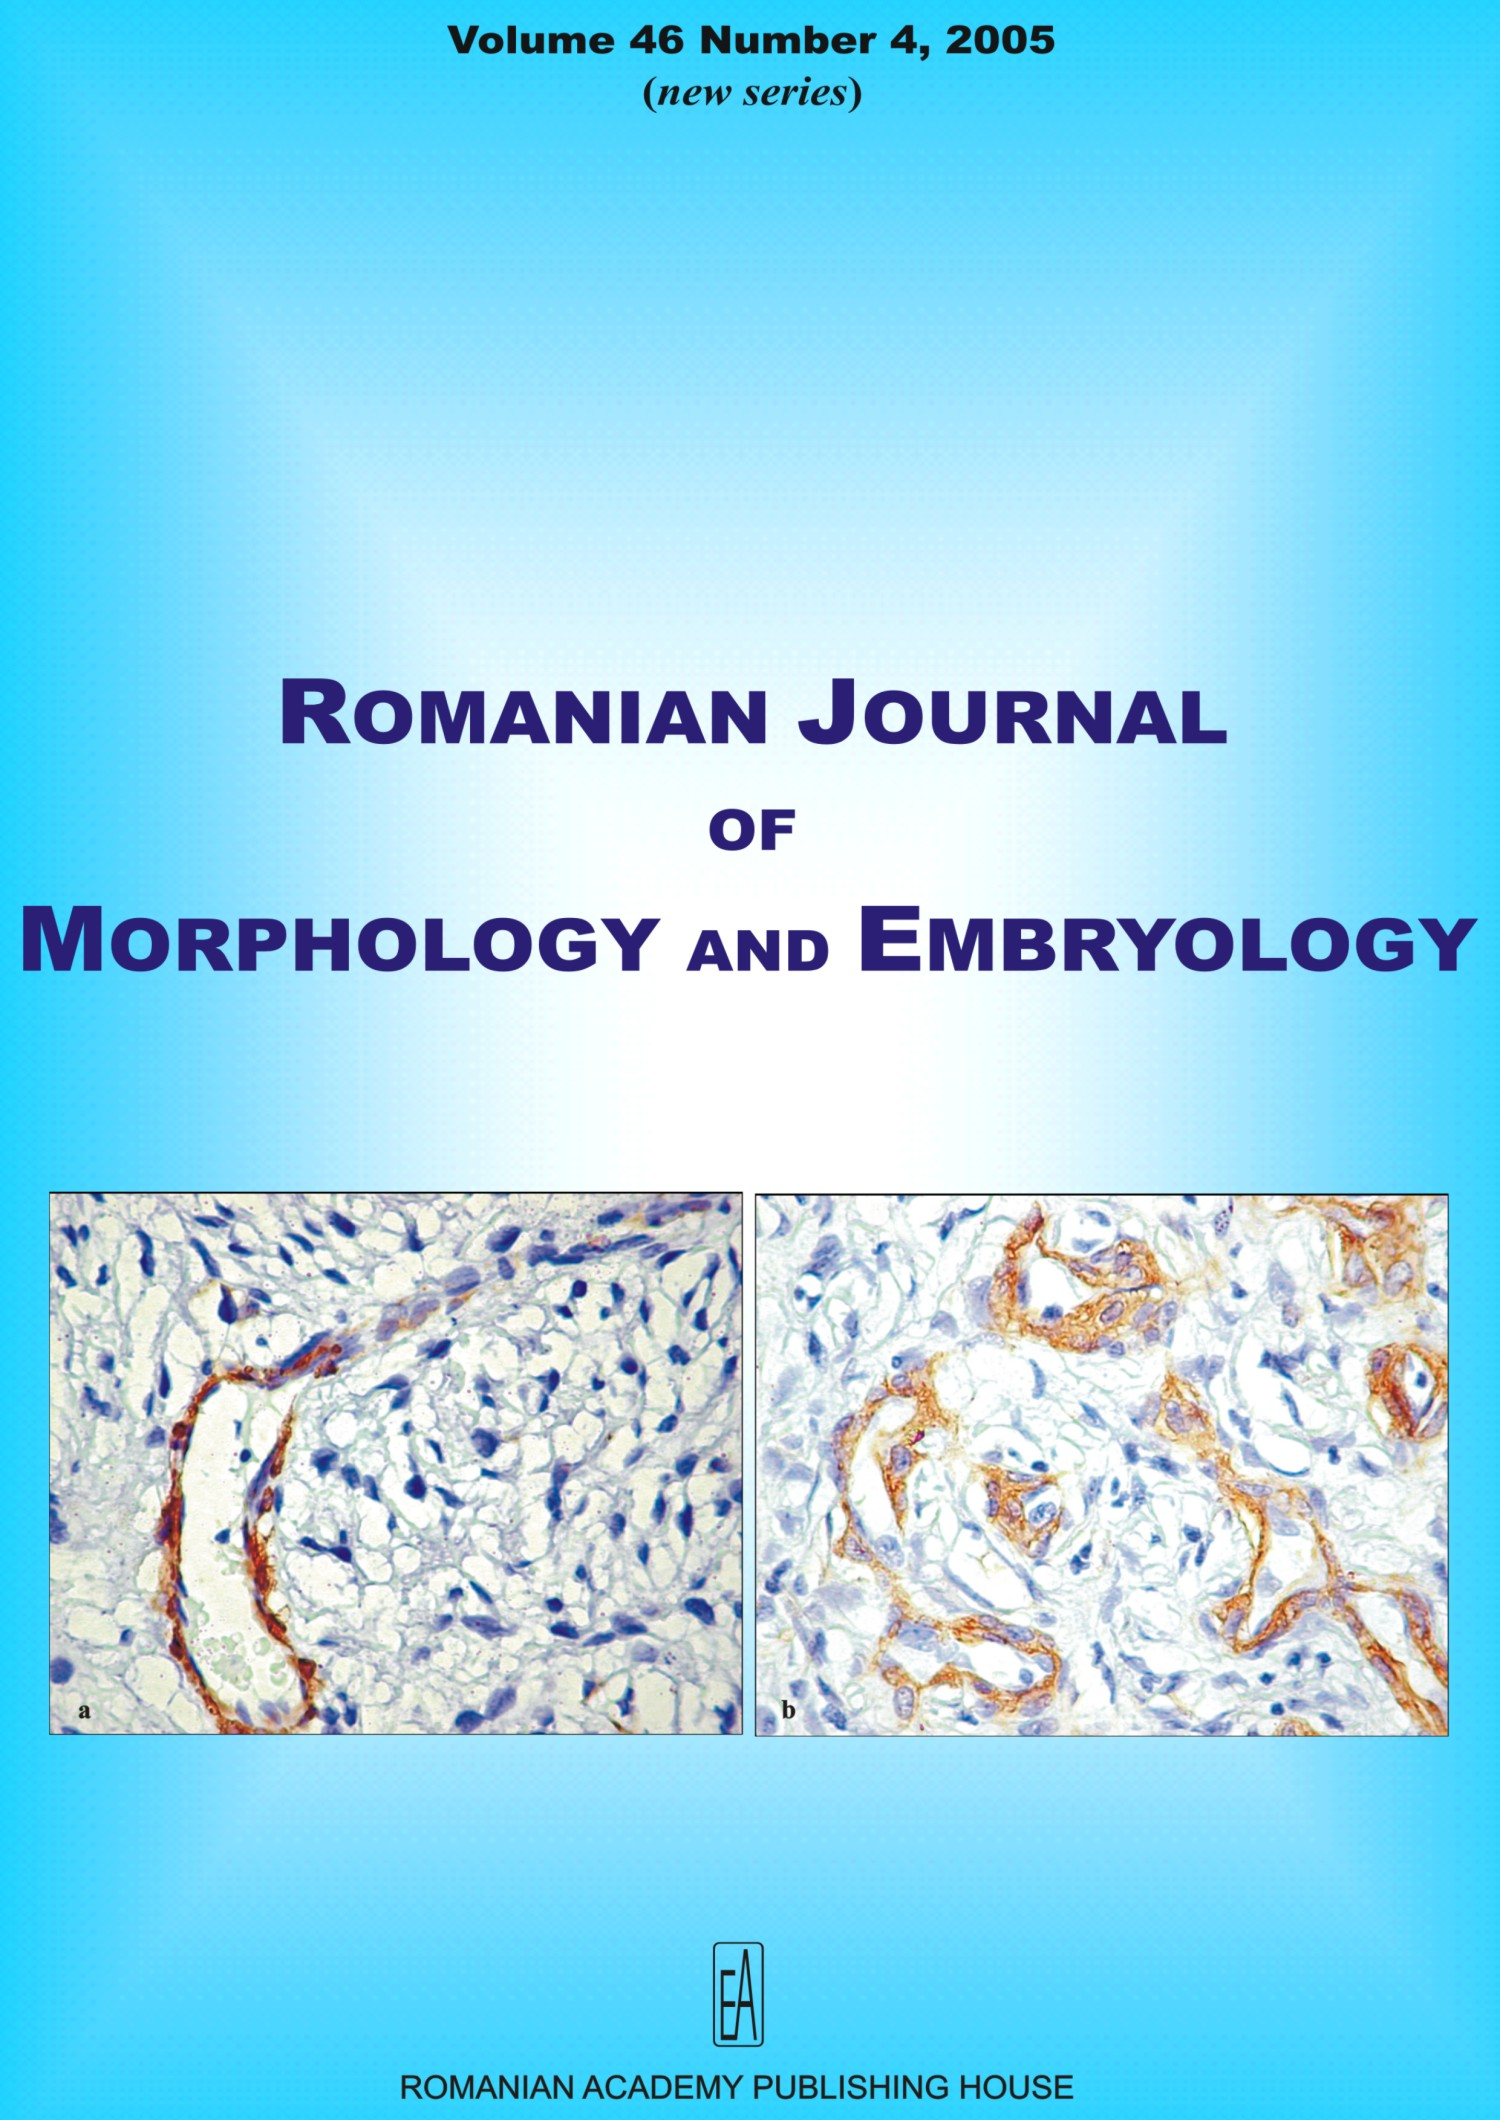 Romanian Journal of Morphology and Embryology, vol. 46 no. 4, 2005